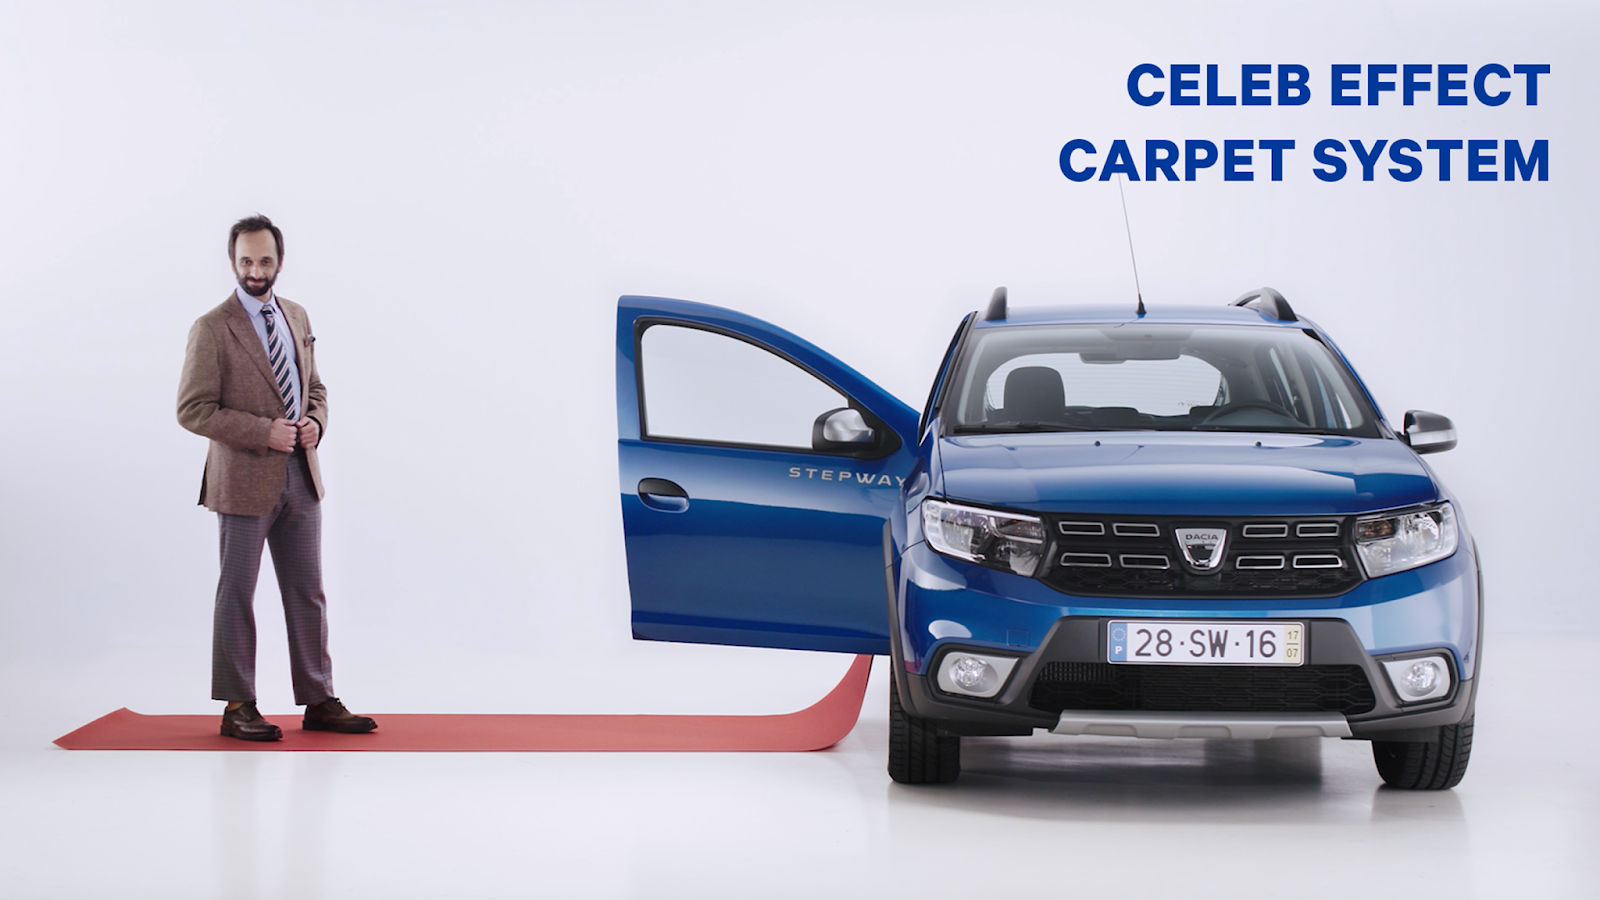 Bein Tv Grille Car Brand Dacia Launches An Unnecessary Line Of Accessories In